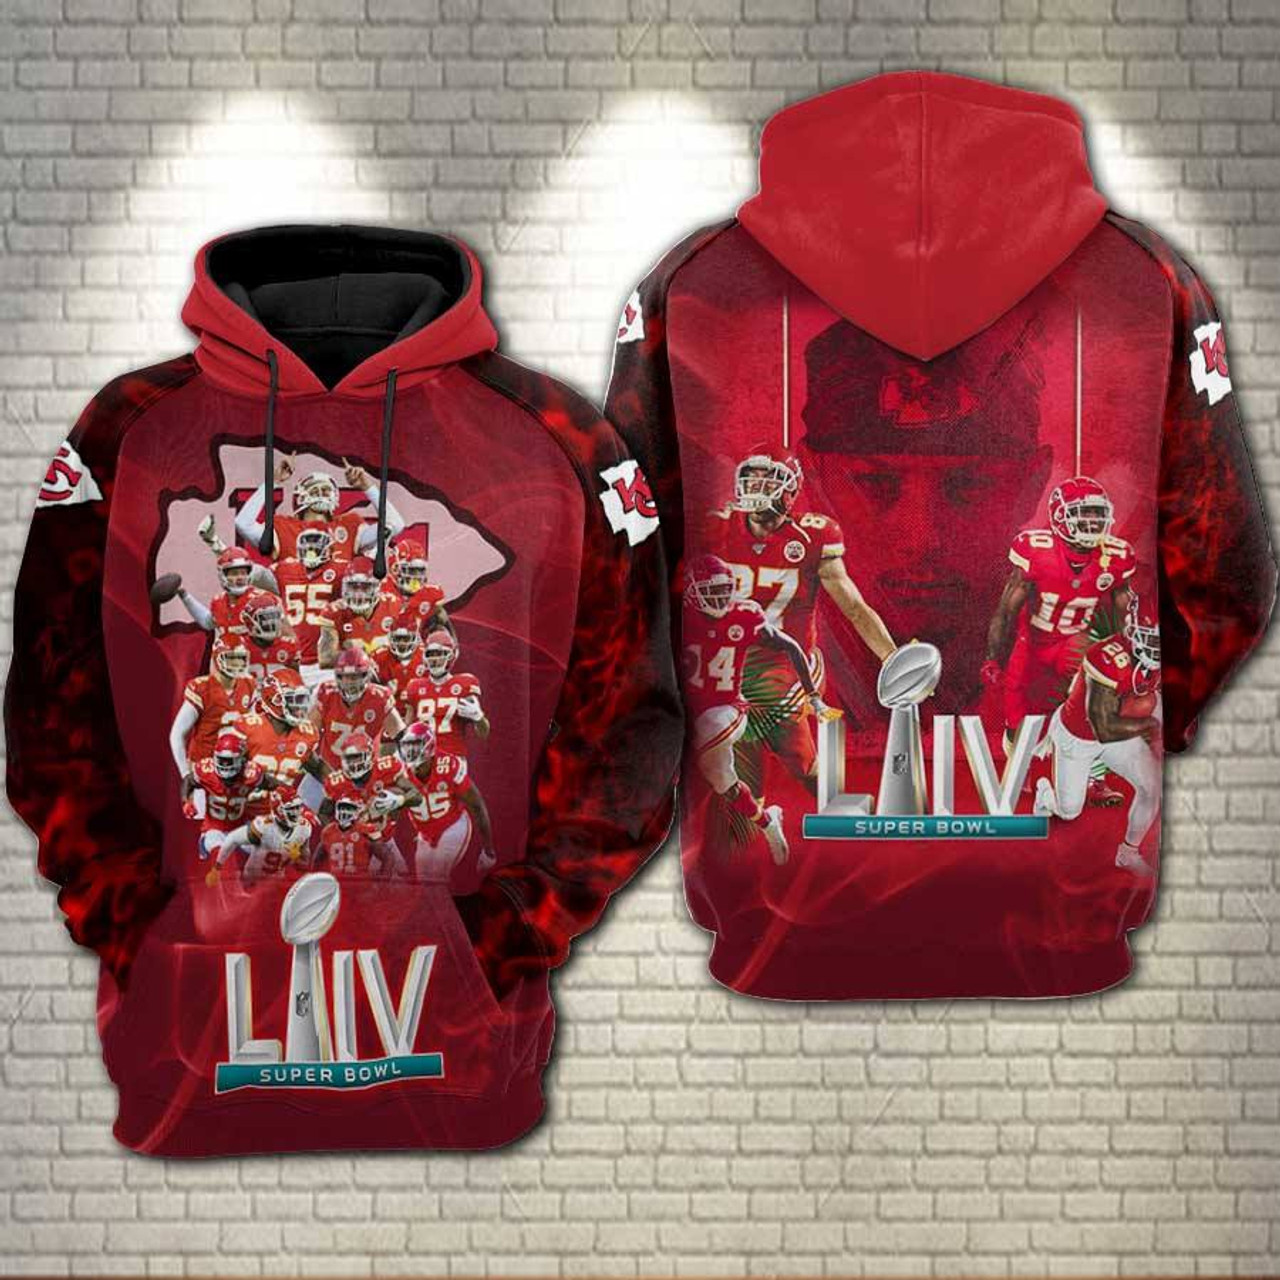 **(OFFICIAL-N.F.L.KANSAS-CITY-CHIEFS-ALL-STAR-PULLOVER-TEAM-HOODIES & SUPER-BOWL-LIV-CHAMPIONS/CUSTOM-3D-GRAPHIC-PRINTED-DESIGN/OFFICIAL-CHIEFS-TEAM-LOGOS & OFFICIAL-CHIEFS-TEAM-COLORS/NICE-WARM-PREMIUM-OFFICIAL-N.F.L.CHIEFS-TEAM-PULLOVER-HOODIES)**